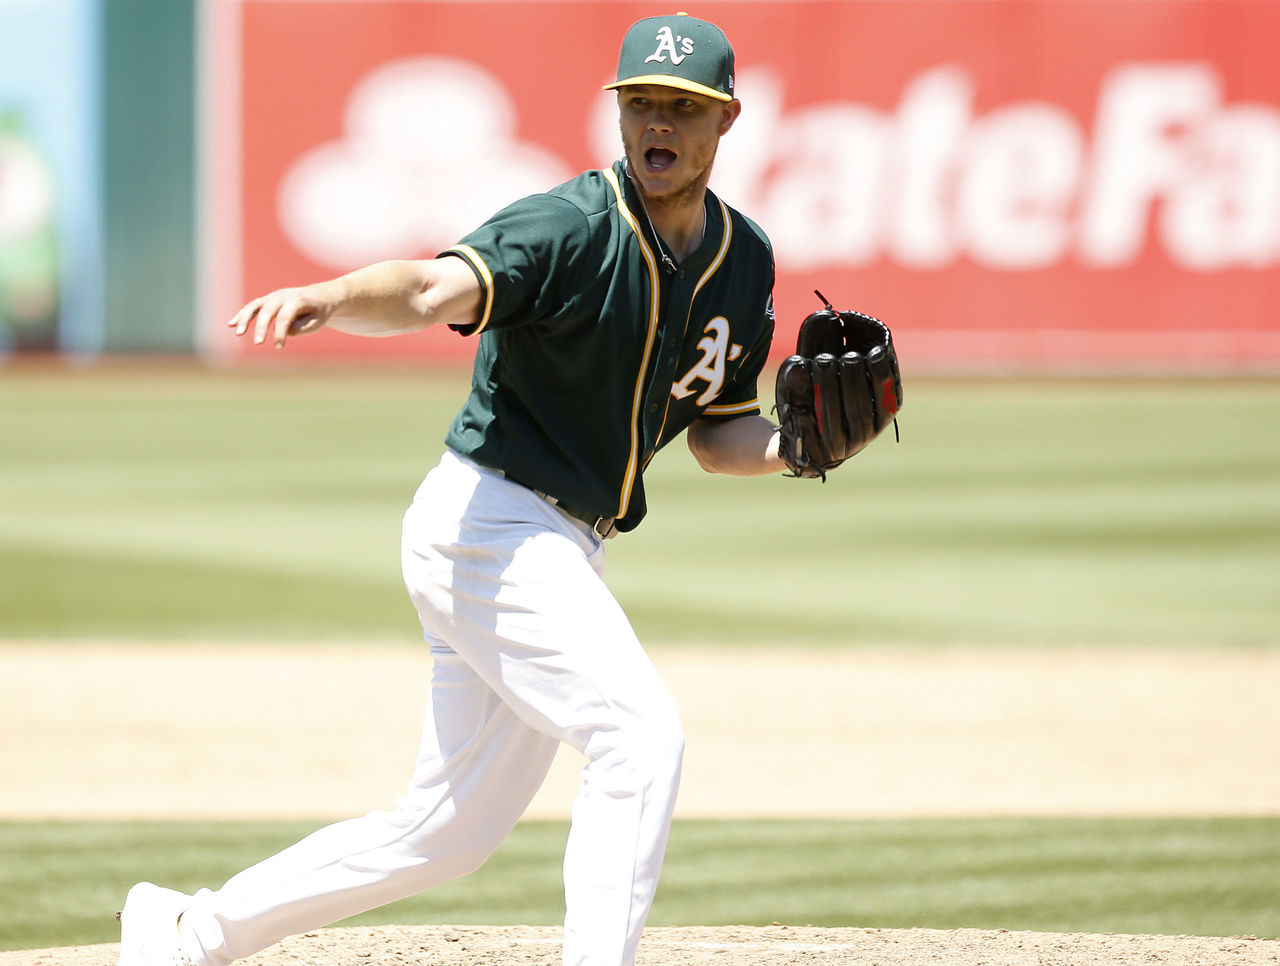 Cropped 2017 07 19t225628z 347804164 nocid rtrmadp 3 mlb tampa bay rays at oakland athletics